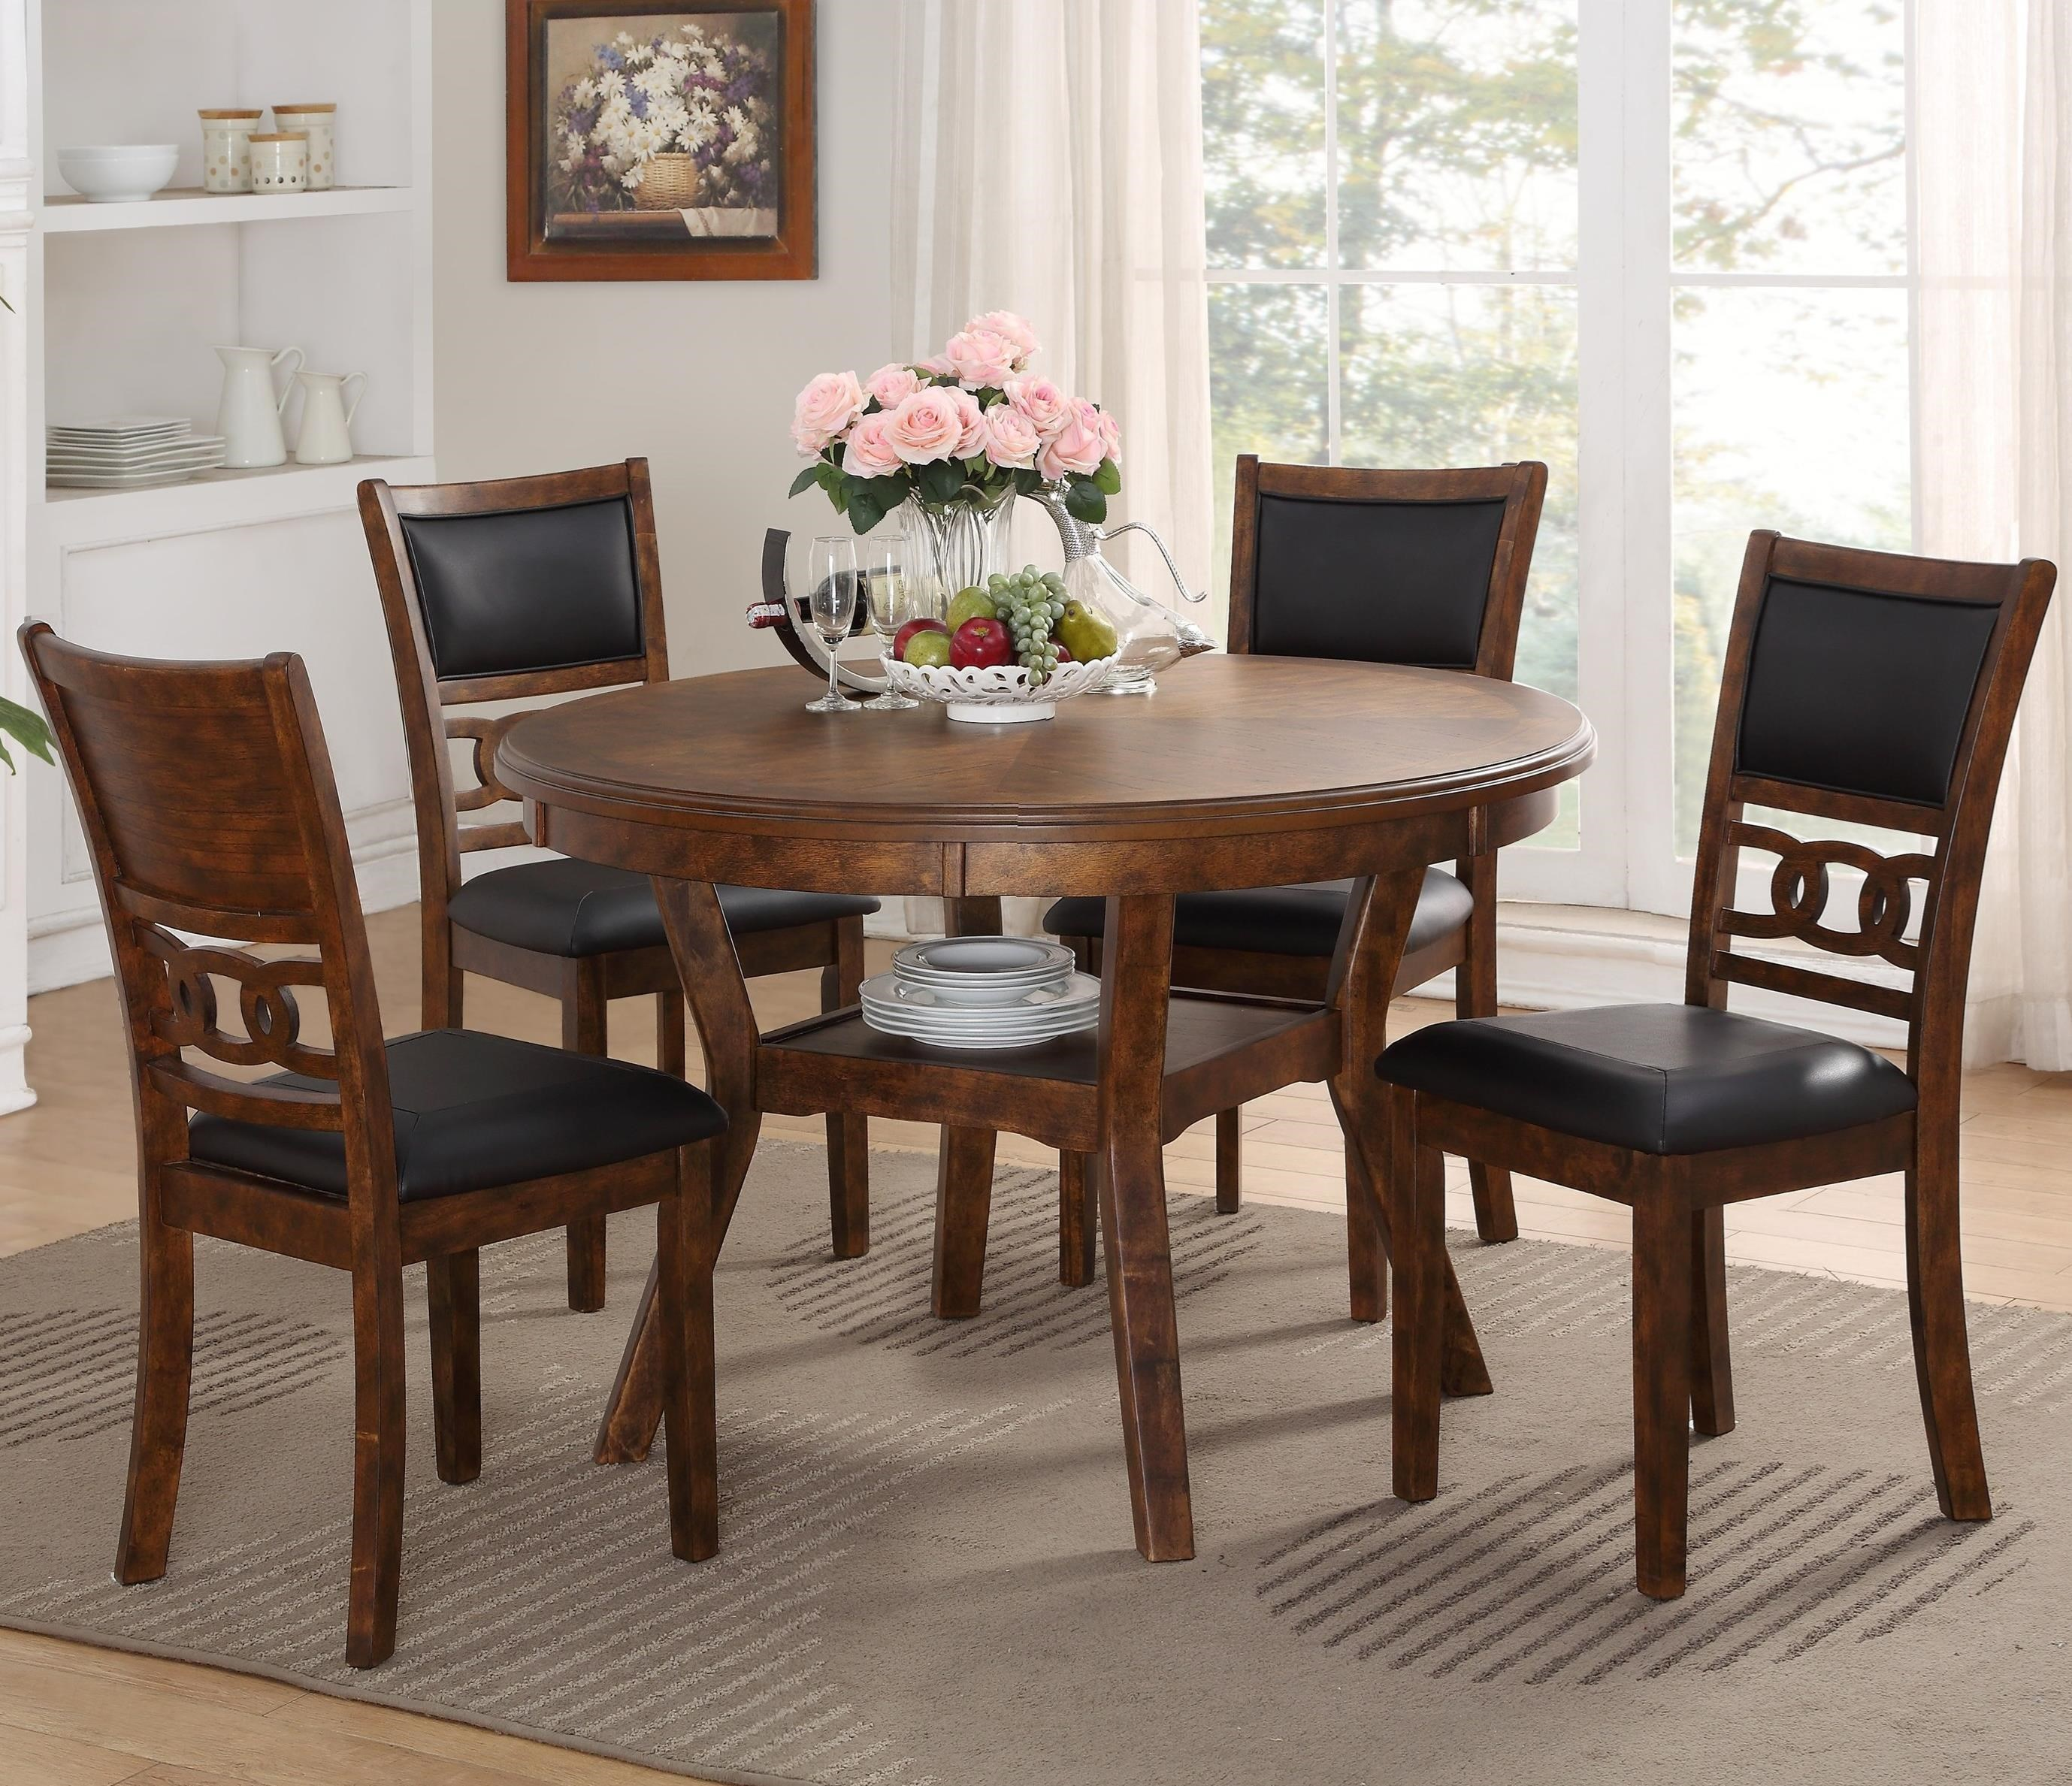 Dining Room Chair Sets Gia Dining Table And Chair Set With 4 Chairs And Circle Motif By New Classic At Great American Home Store